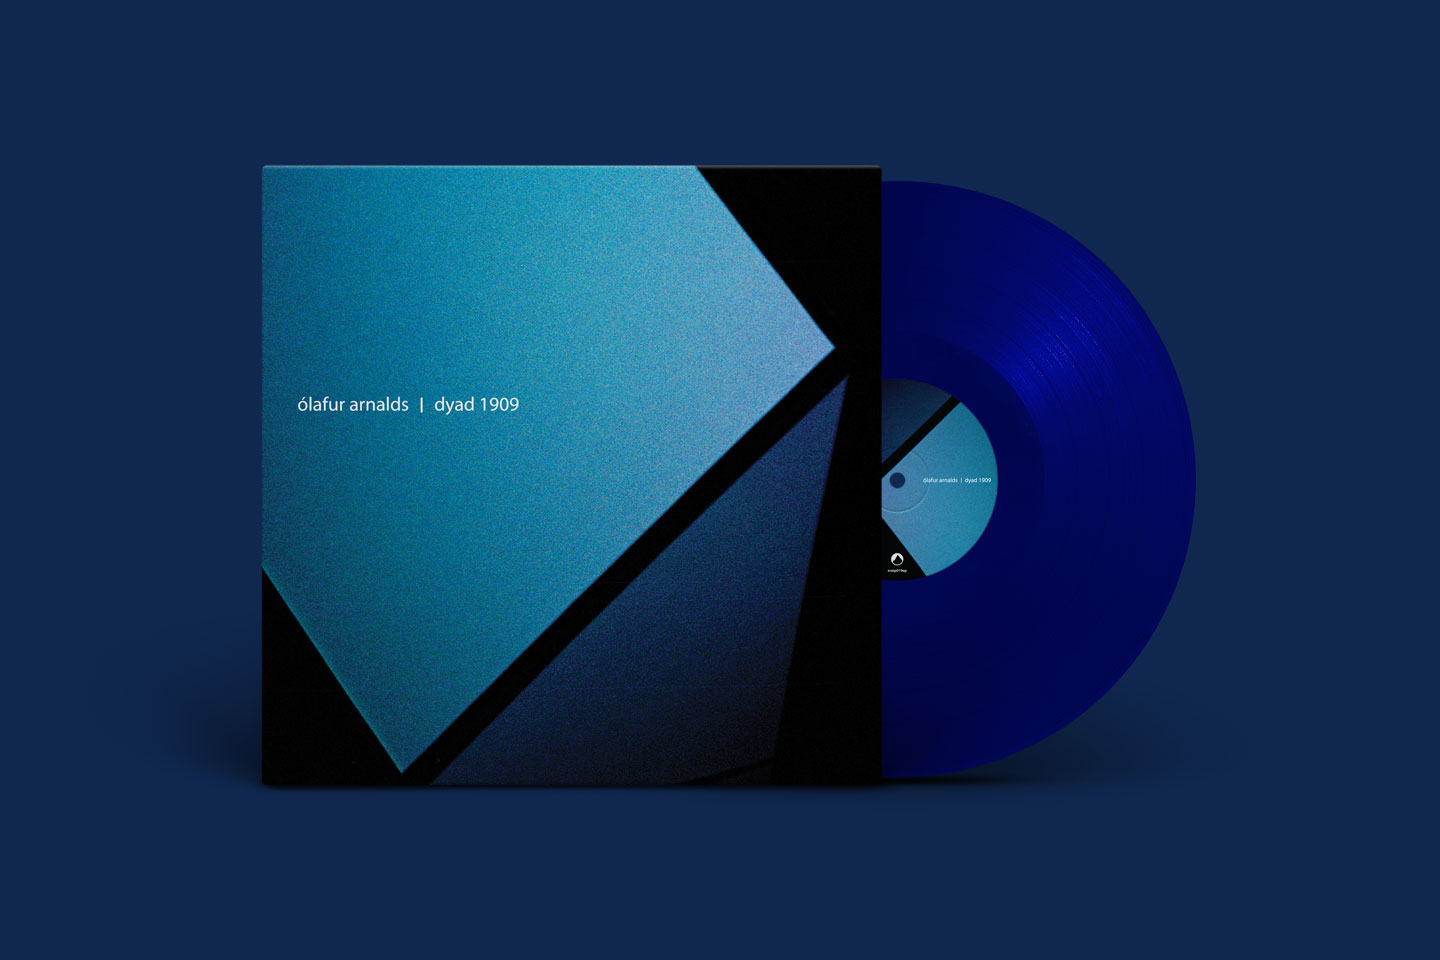 Dyad 1909 By 211 Lafur Arnalds Releases Erased Tapes